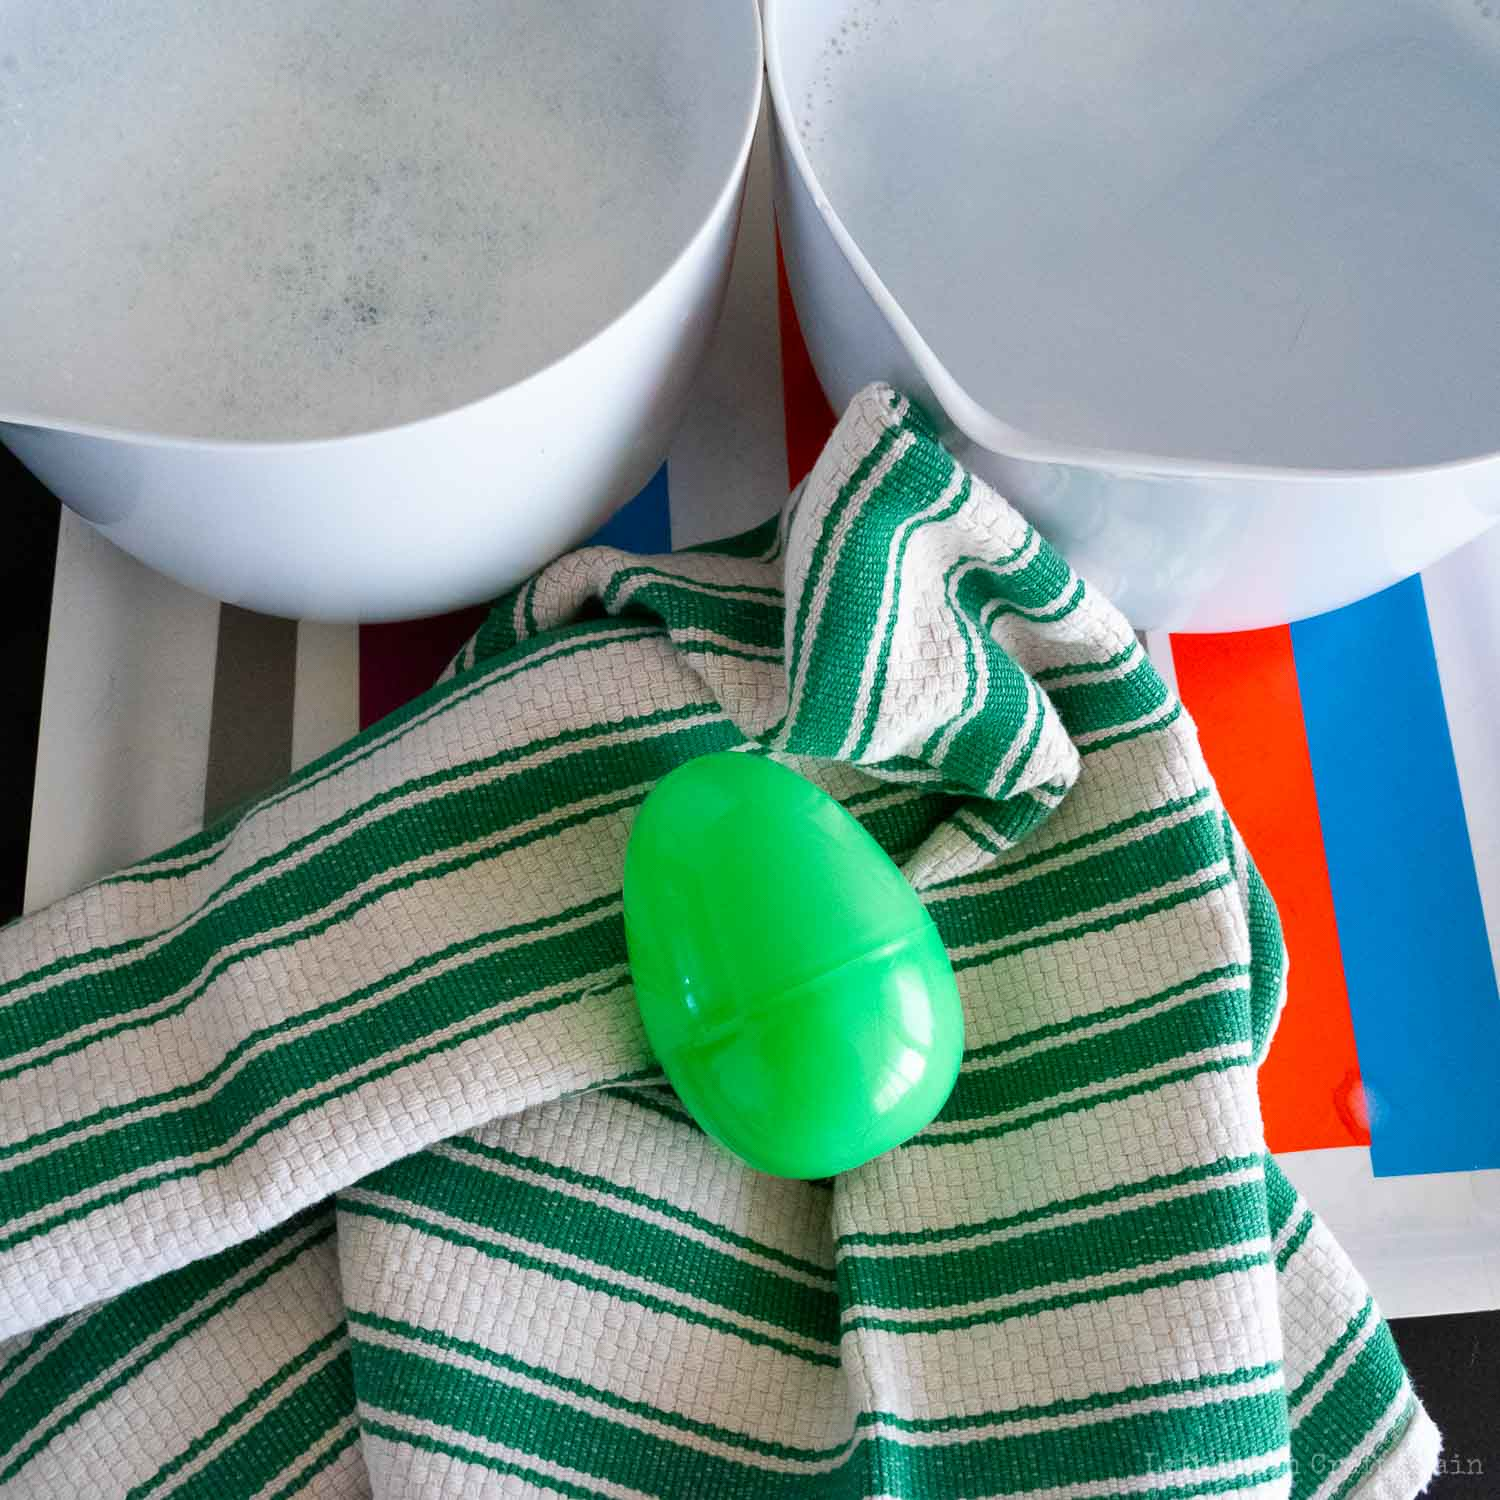 shake wool roving ball in easter egg inside of kitchen towel until a lot of the water comes out